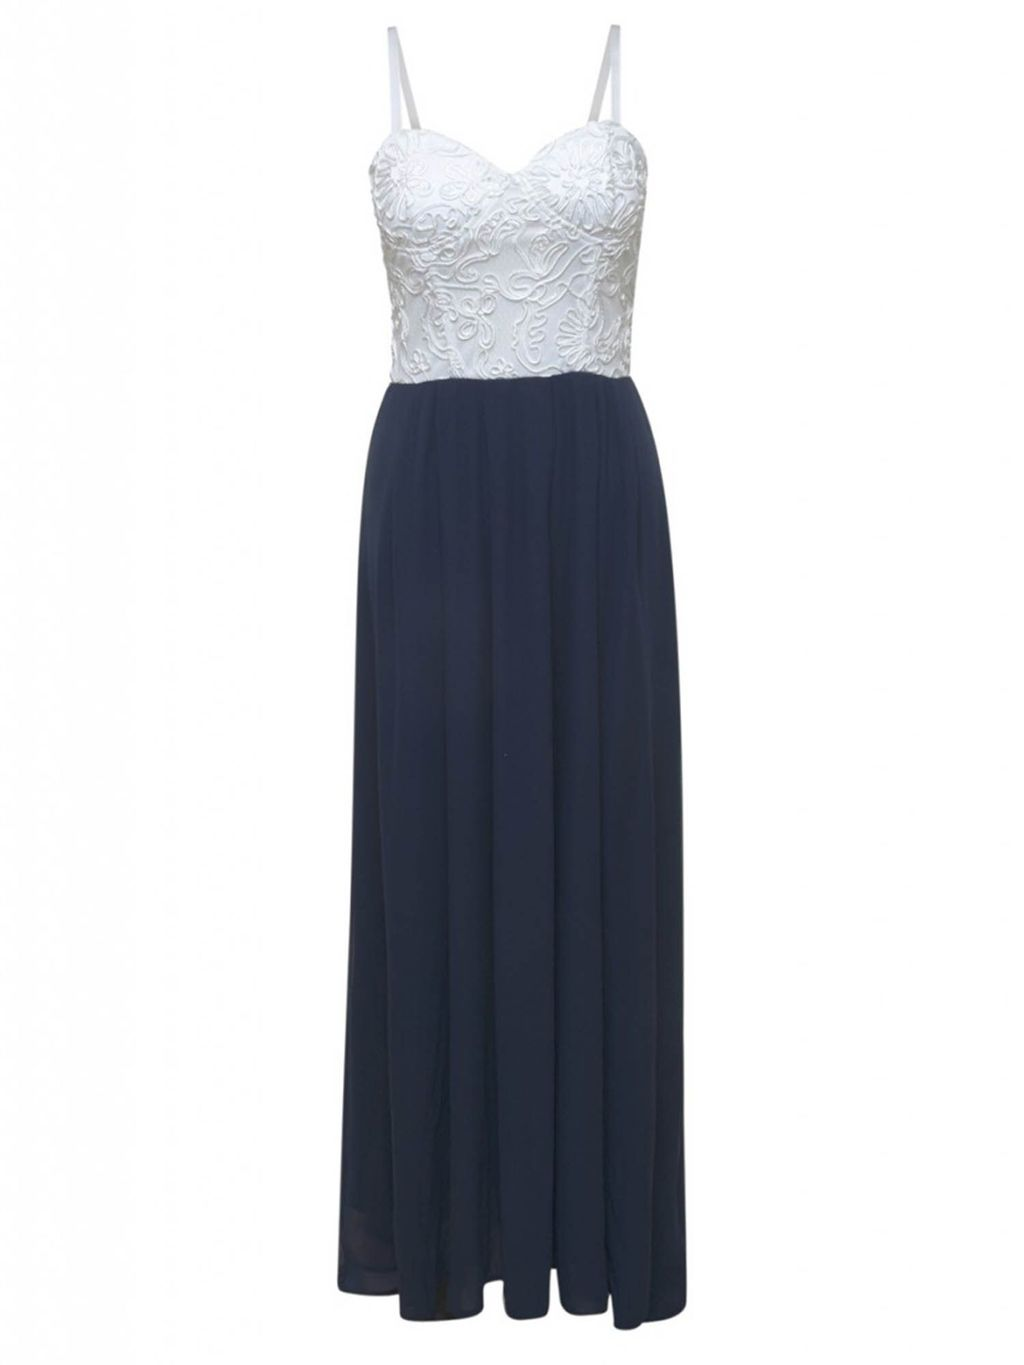 Contrast Lace Bodice Maxi Dress, Navy - sleeve style: standard vest straps/shoulder straps; style: maxi dress; neckline: sweetheart; back detail: back revealing; secondary colour: white; predominant colour: navy; length: floor length; fit: soft a-line; fibres: polyester/polyamide - 100%; occasions: occasion; sleeve length: sleeveless; texture group: sheer fabrics/chiffon/organza etc.; pattern type: fabric; pattern size: standard; pattern: colourblock; embellishment: lace; multicoloured: multicoloured; season: s/s 2016; wardrobe: event